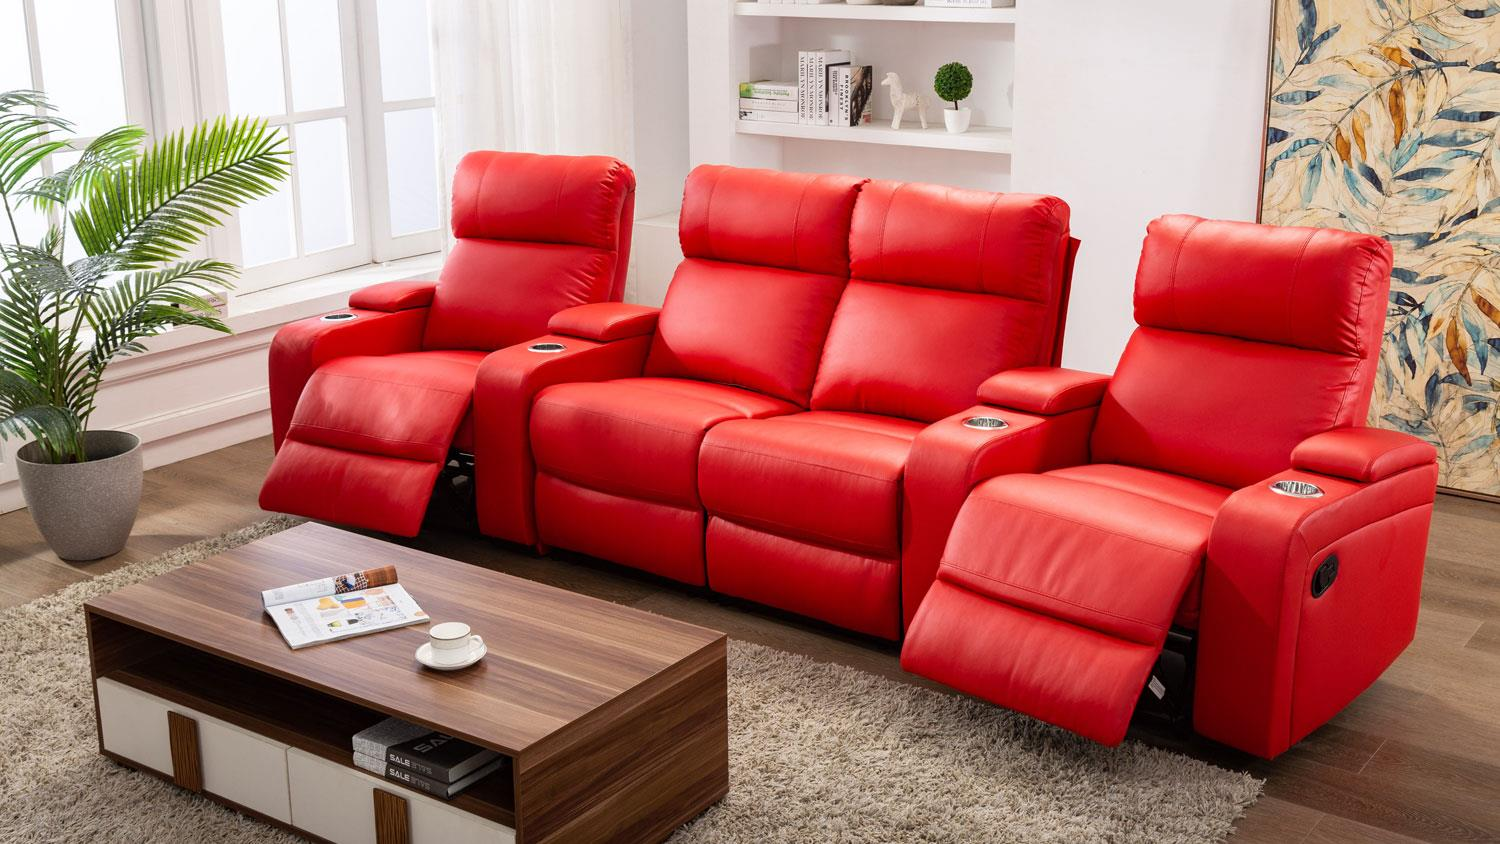 Kinosessel Couch Cinema Sofa 4er Kinosessel In Rot Mit Relaxfunktion